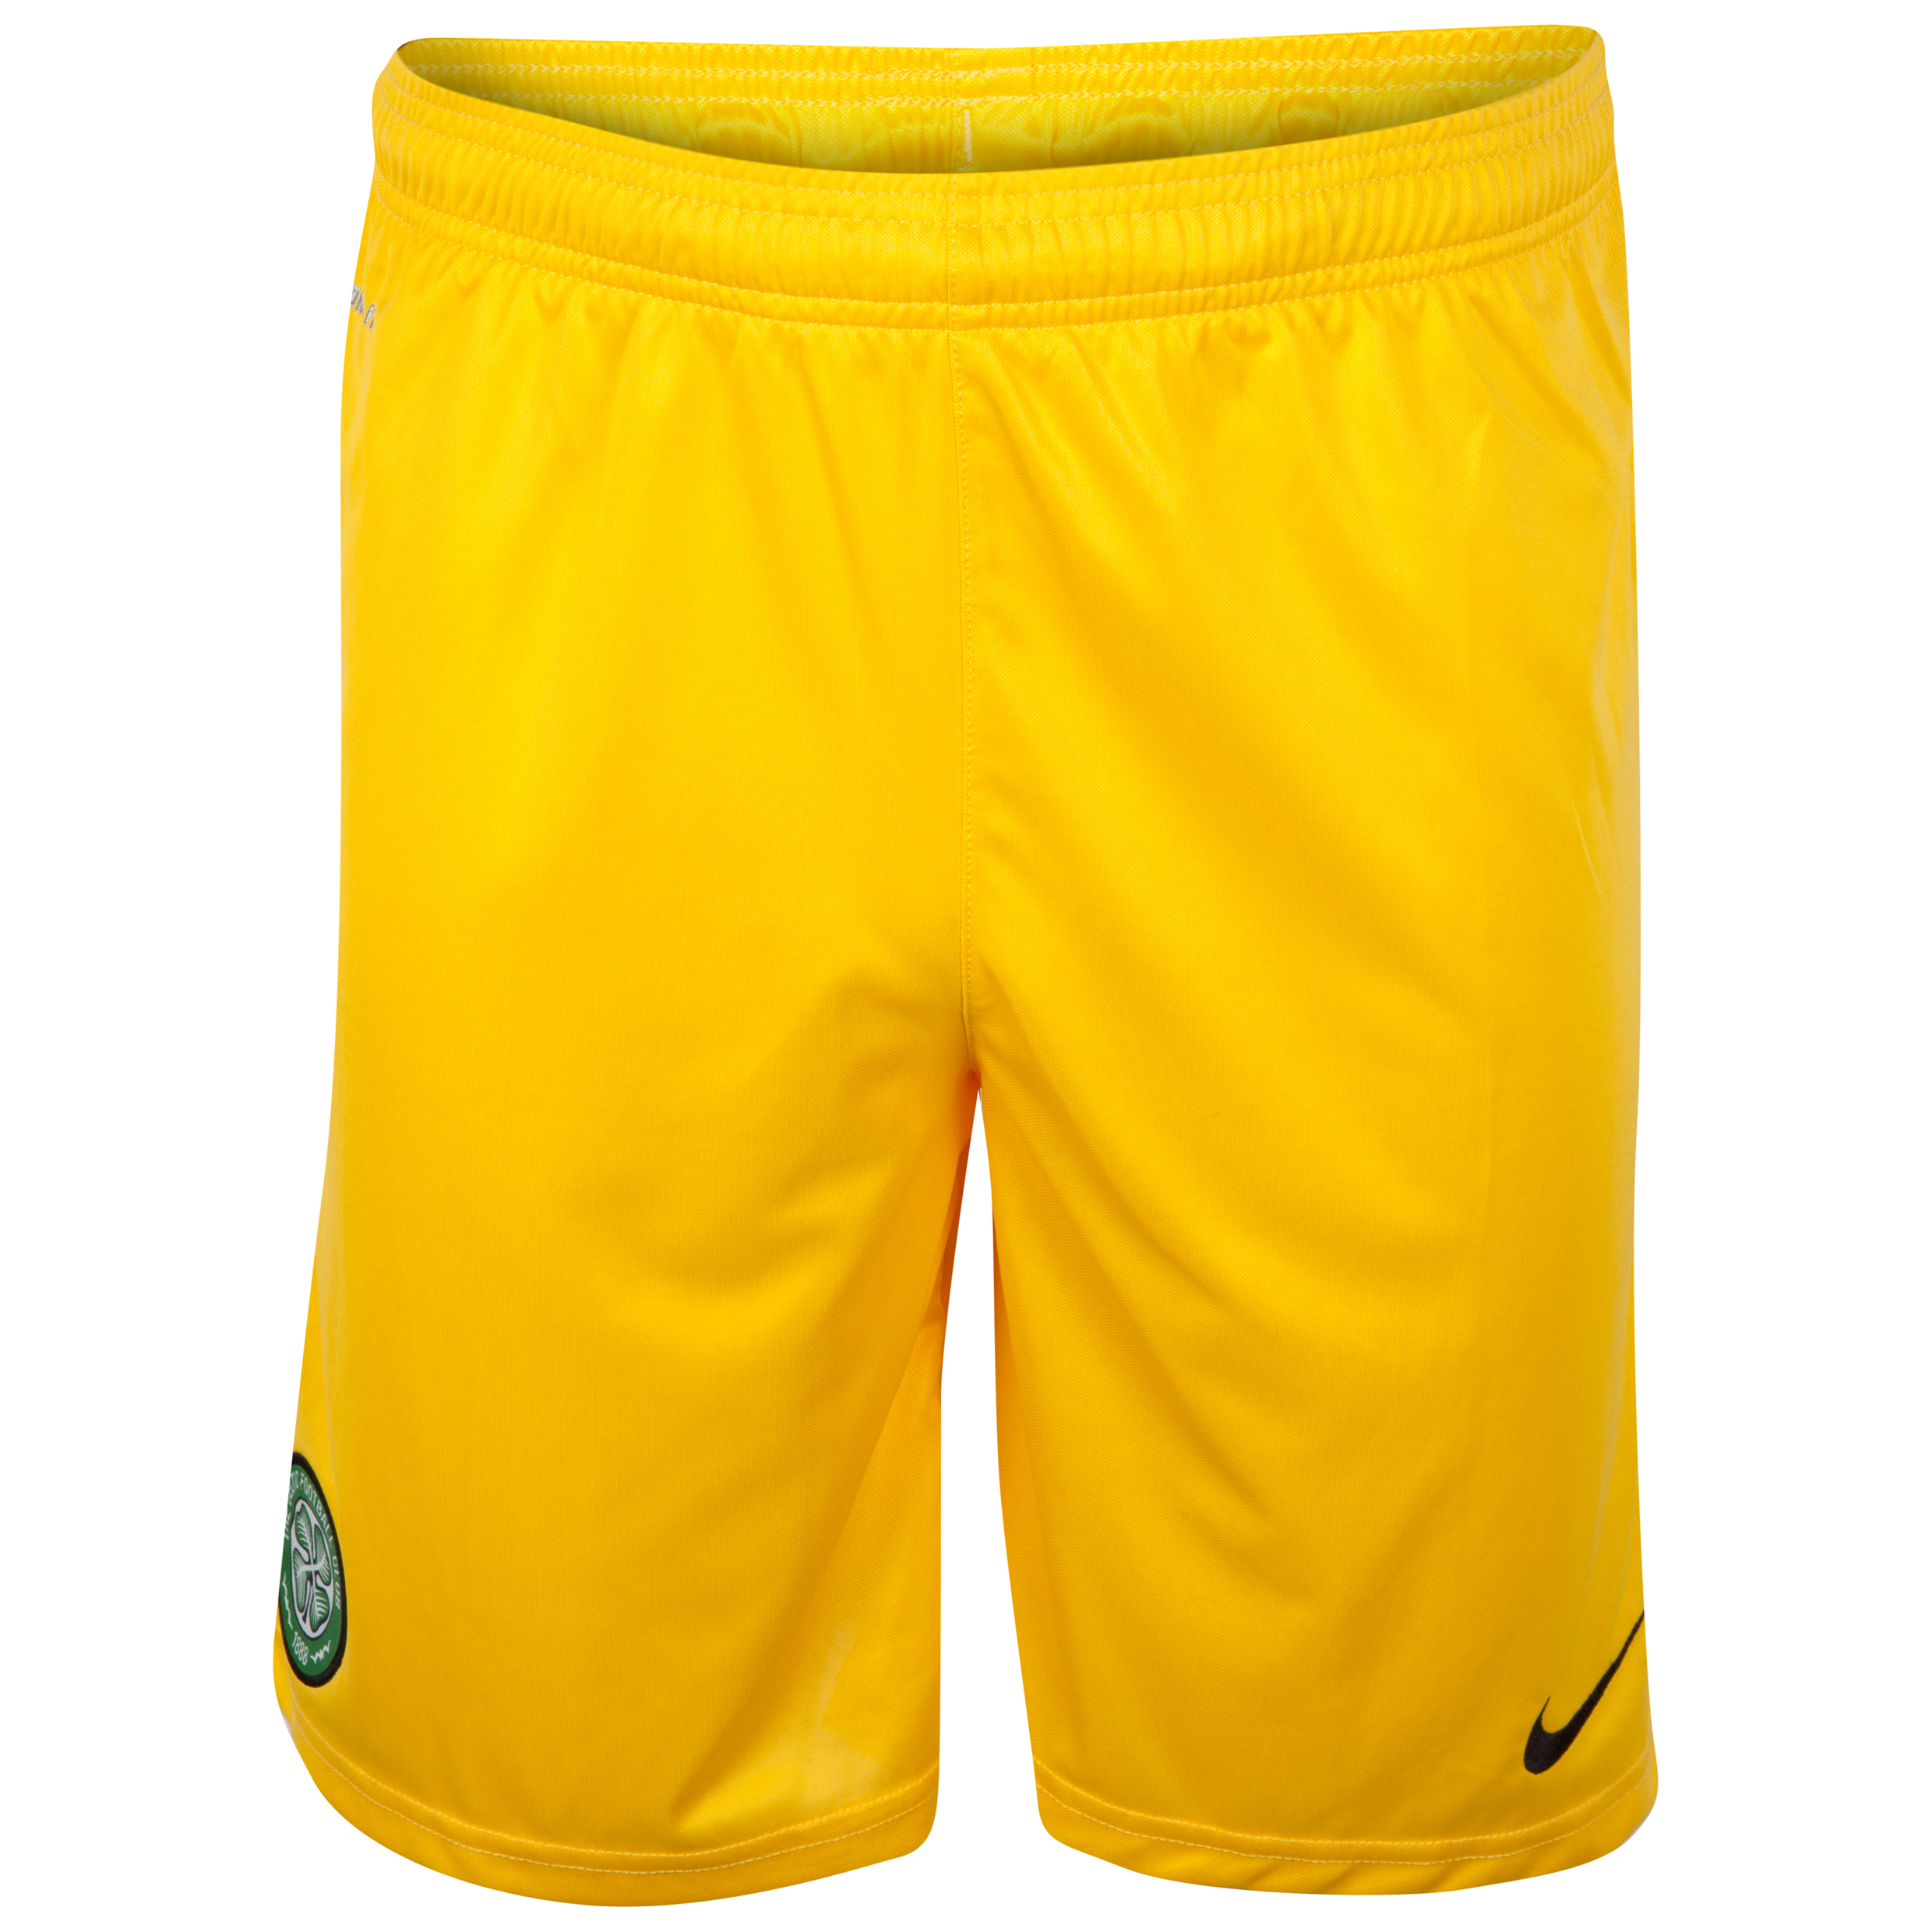 Celtic Away Goalkeeper Shorts 2012/13 - Youths